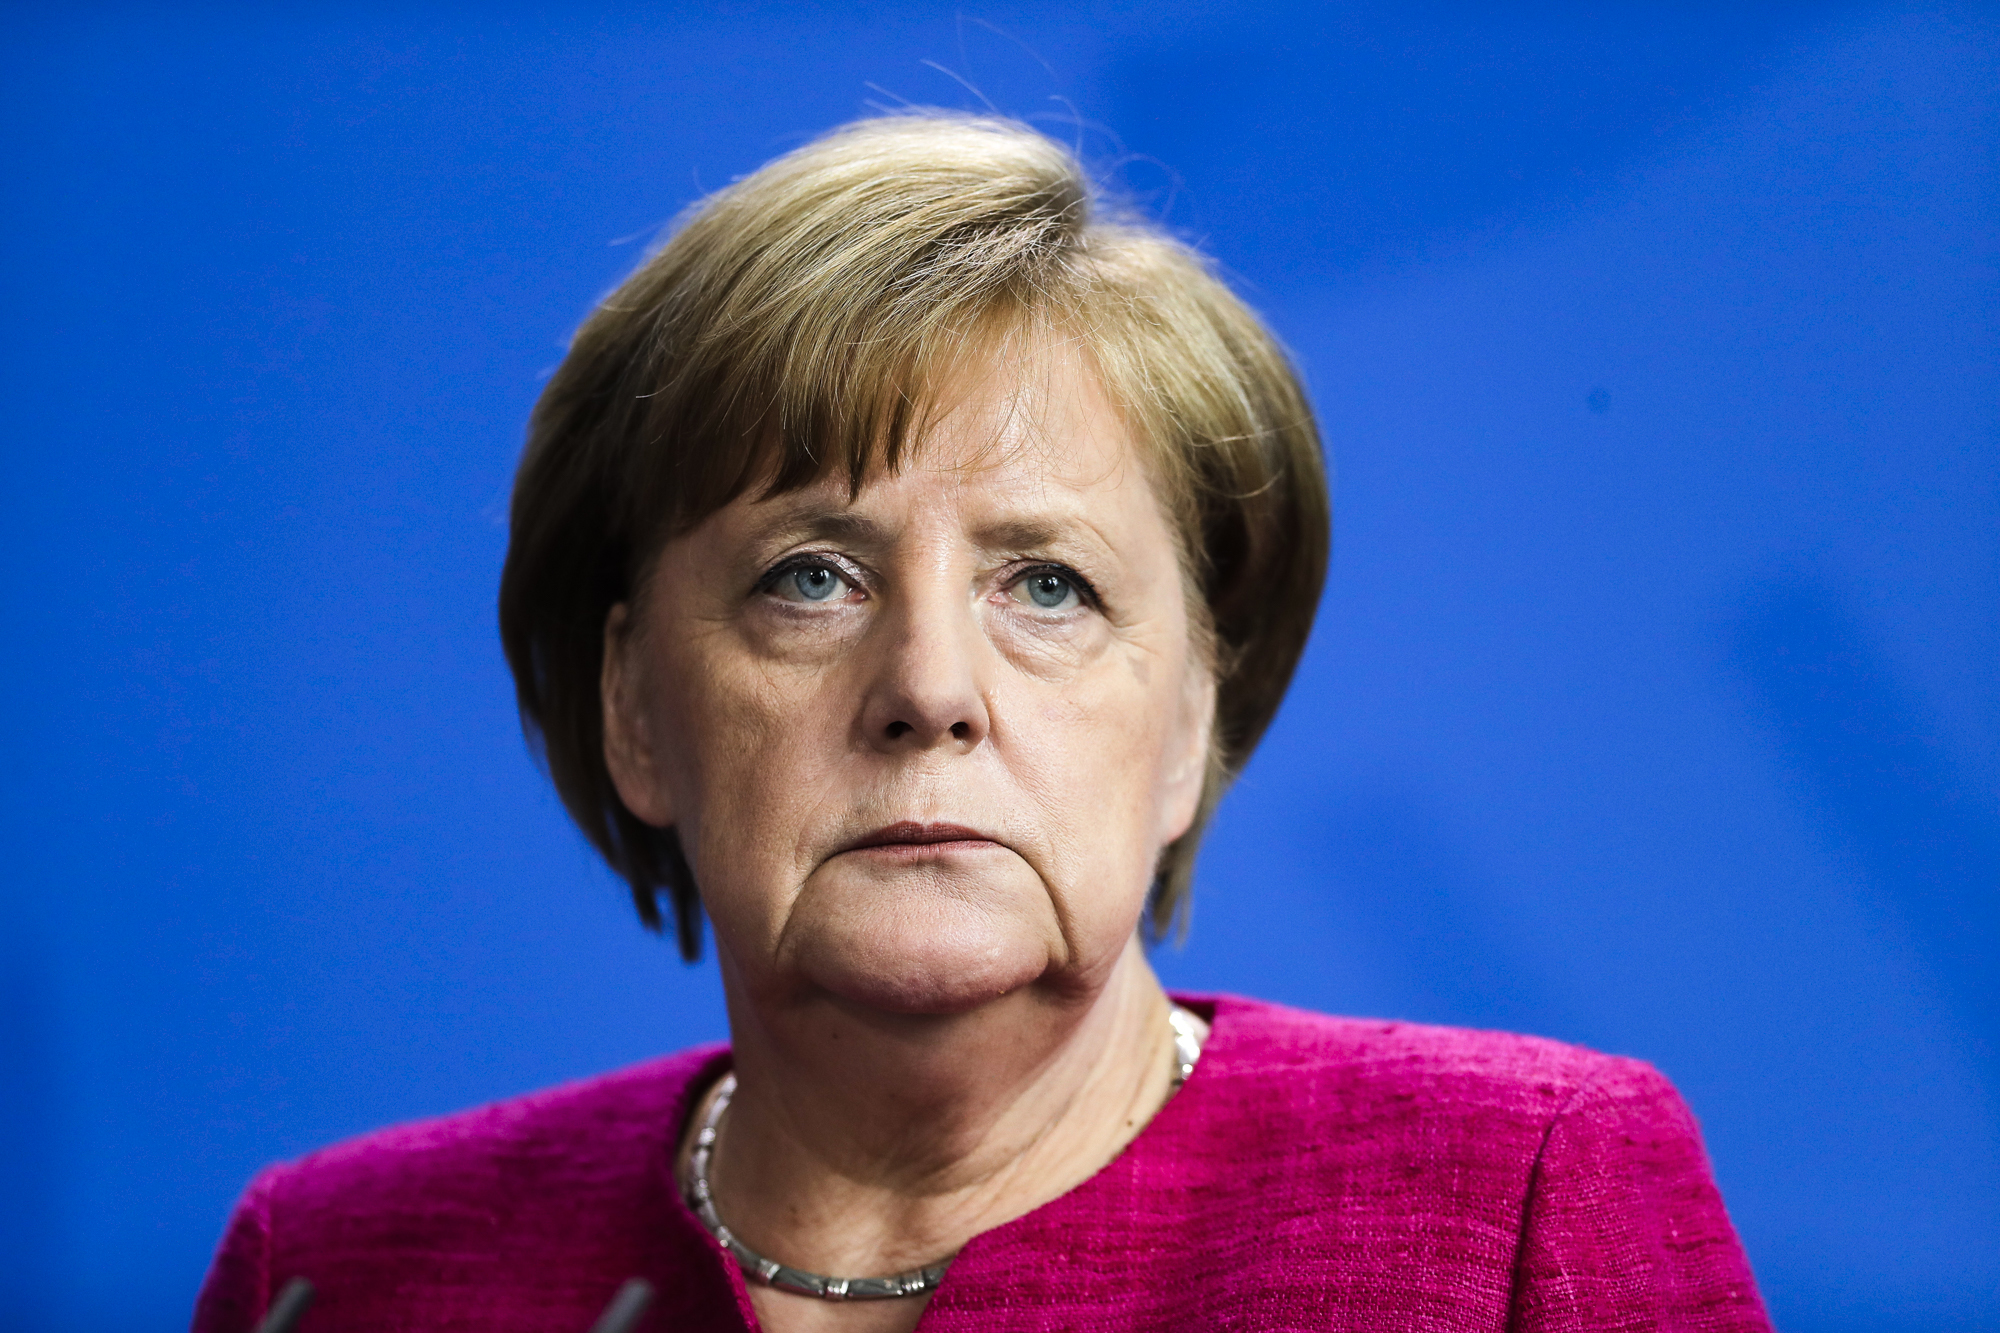 Merkel gets 2-week deadline in German migrant row